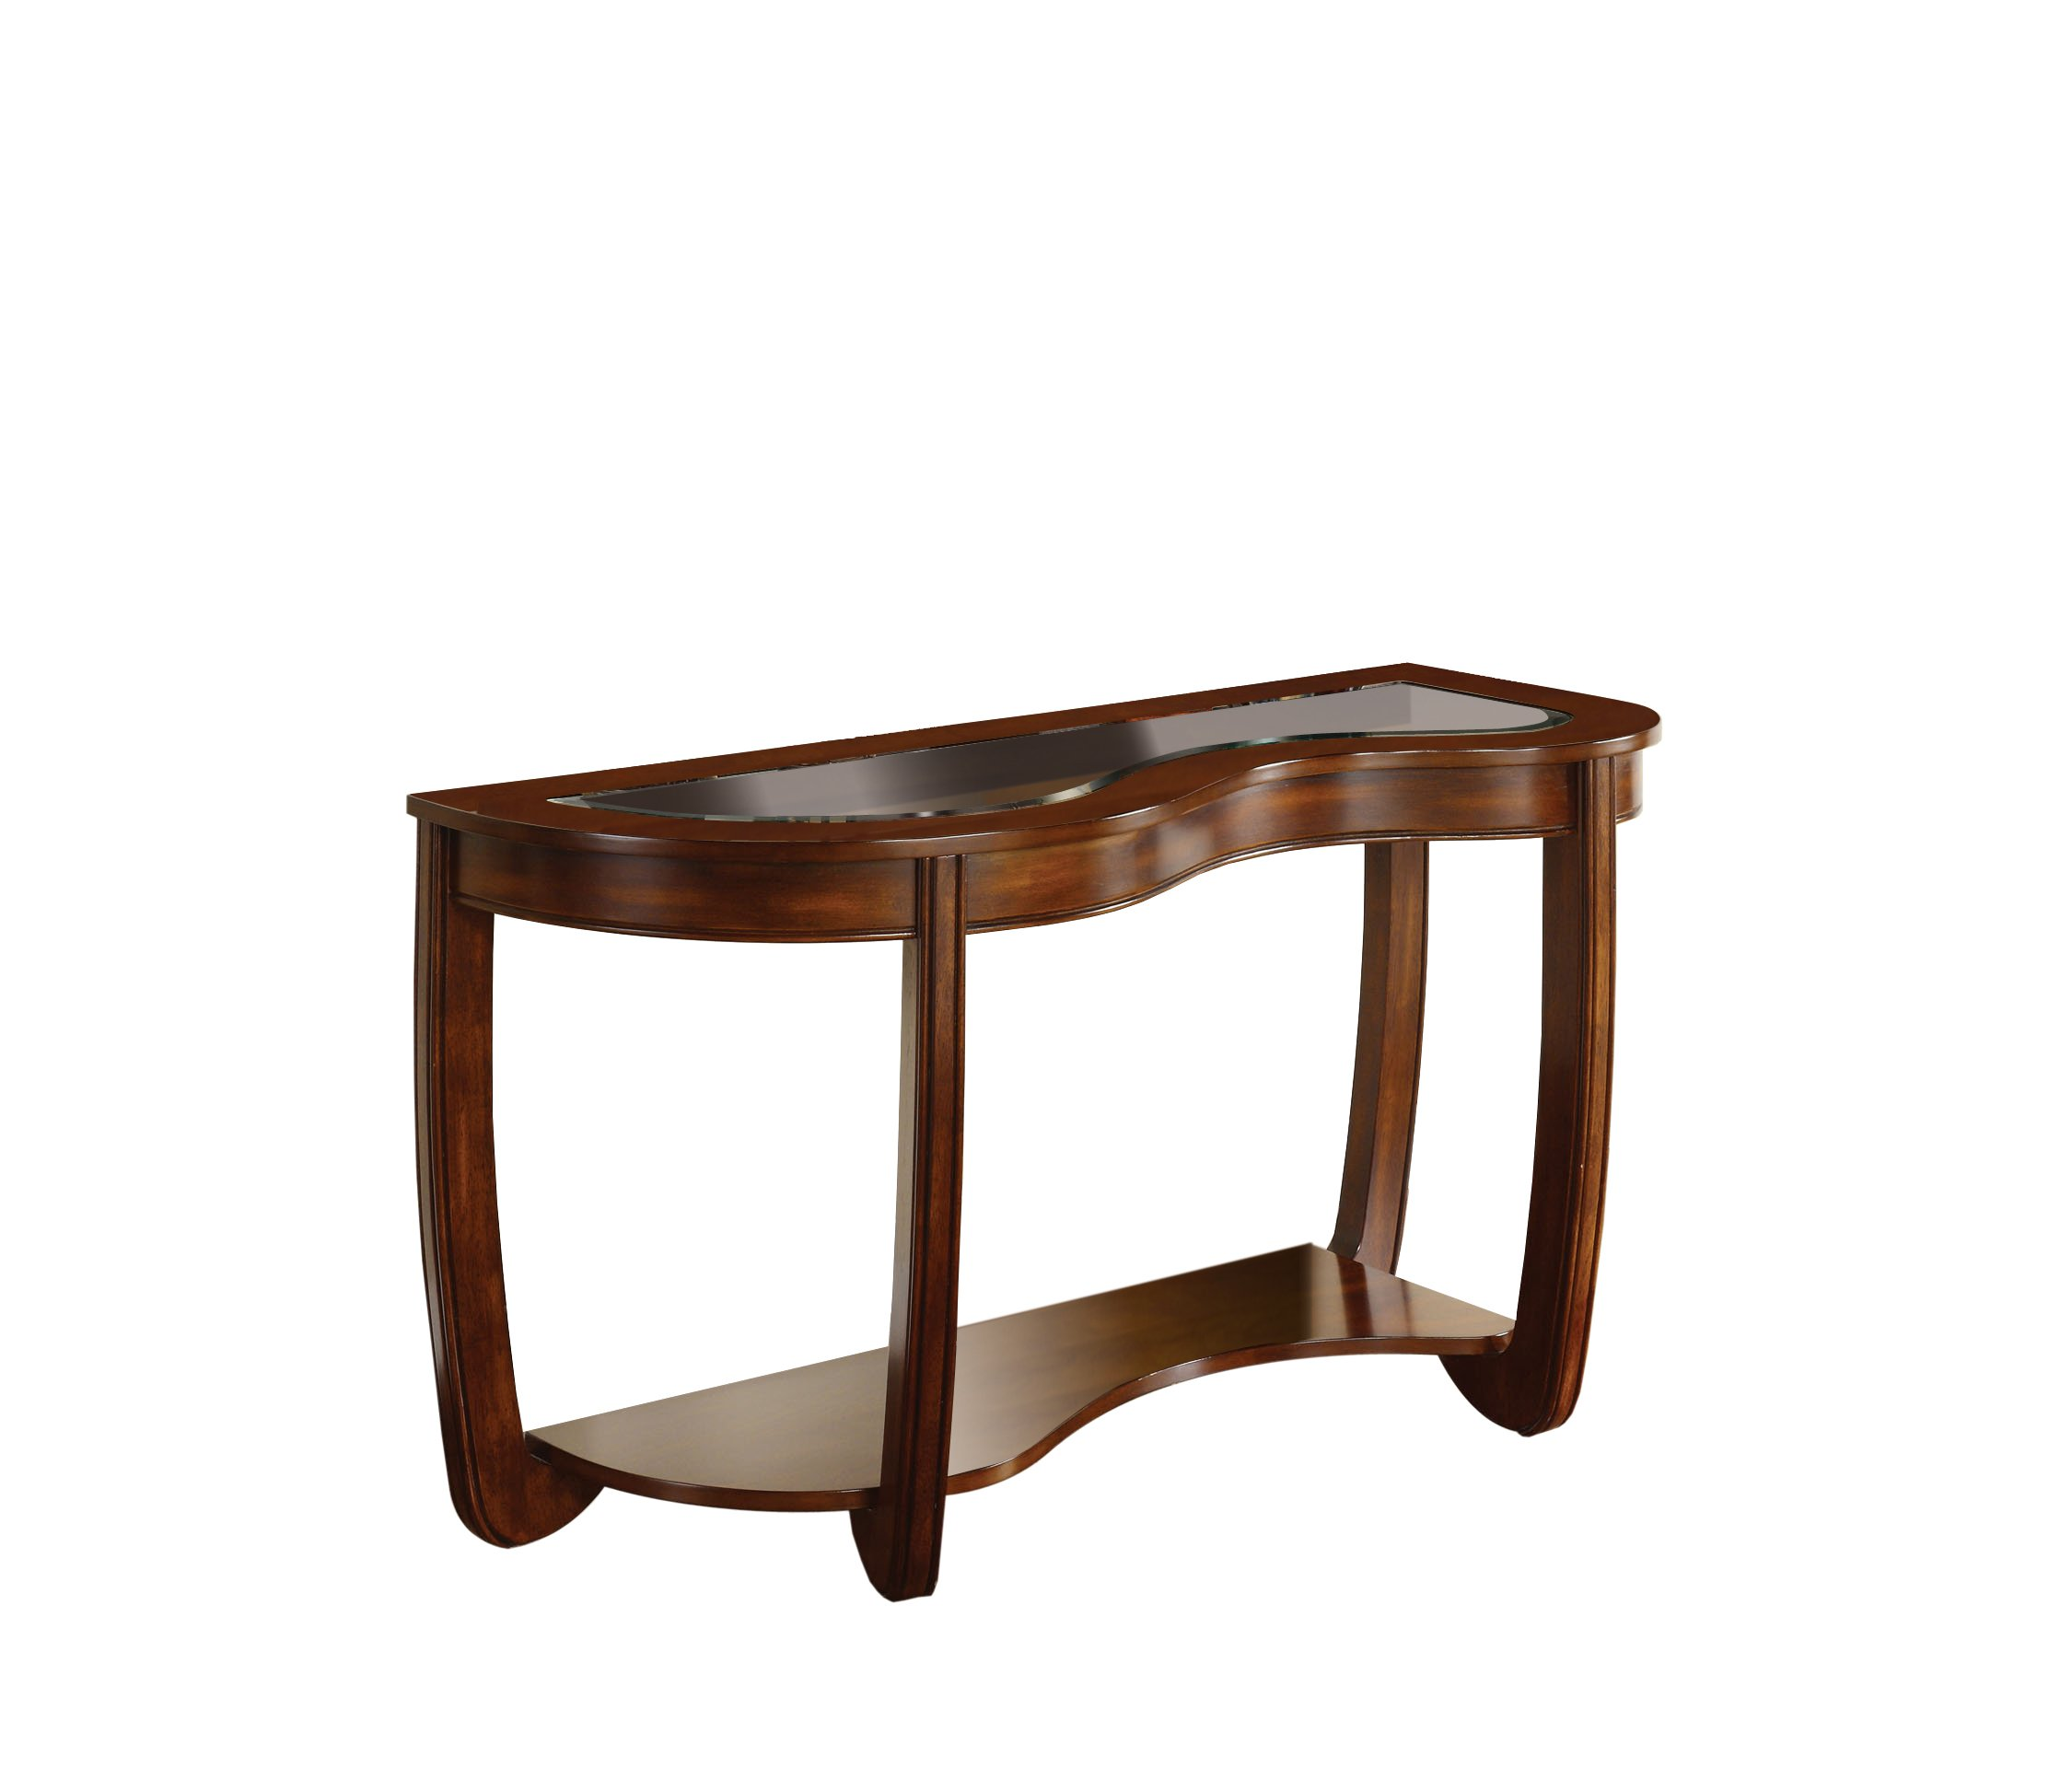 Furniture of America Byrnee Sofa Table with 5mm Beveled Glass Top, Dark Cherry Finish by Furniture of America